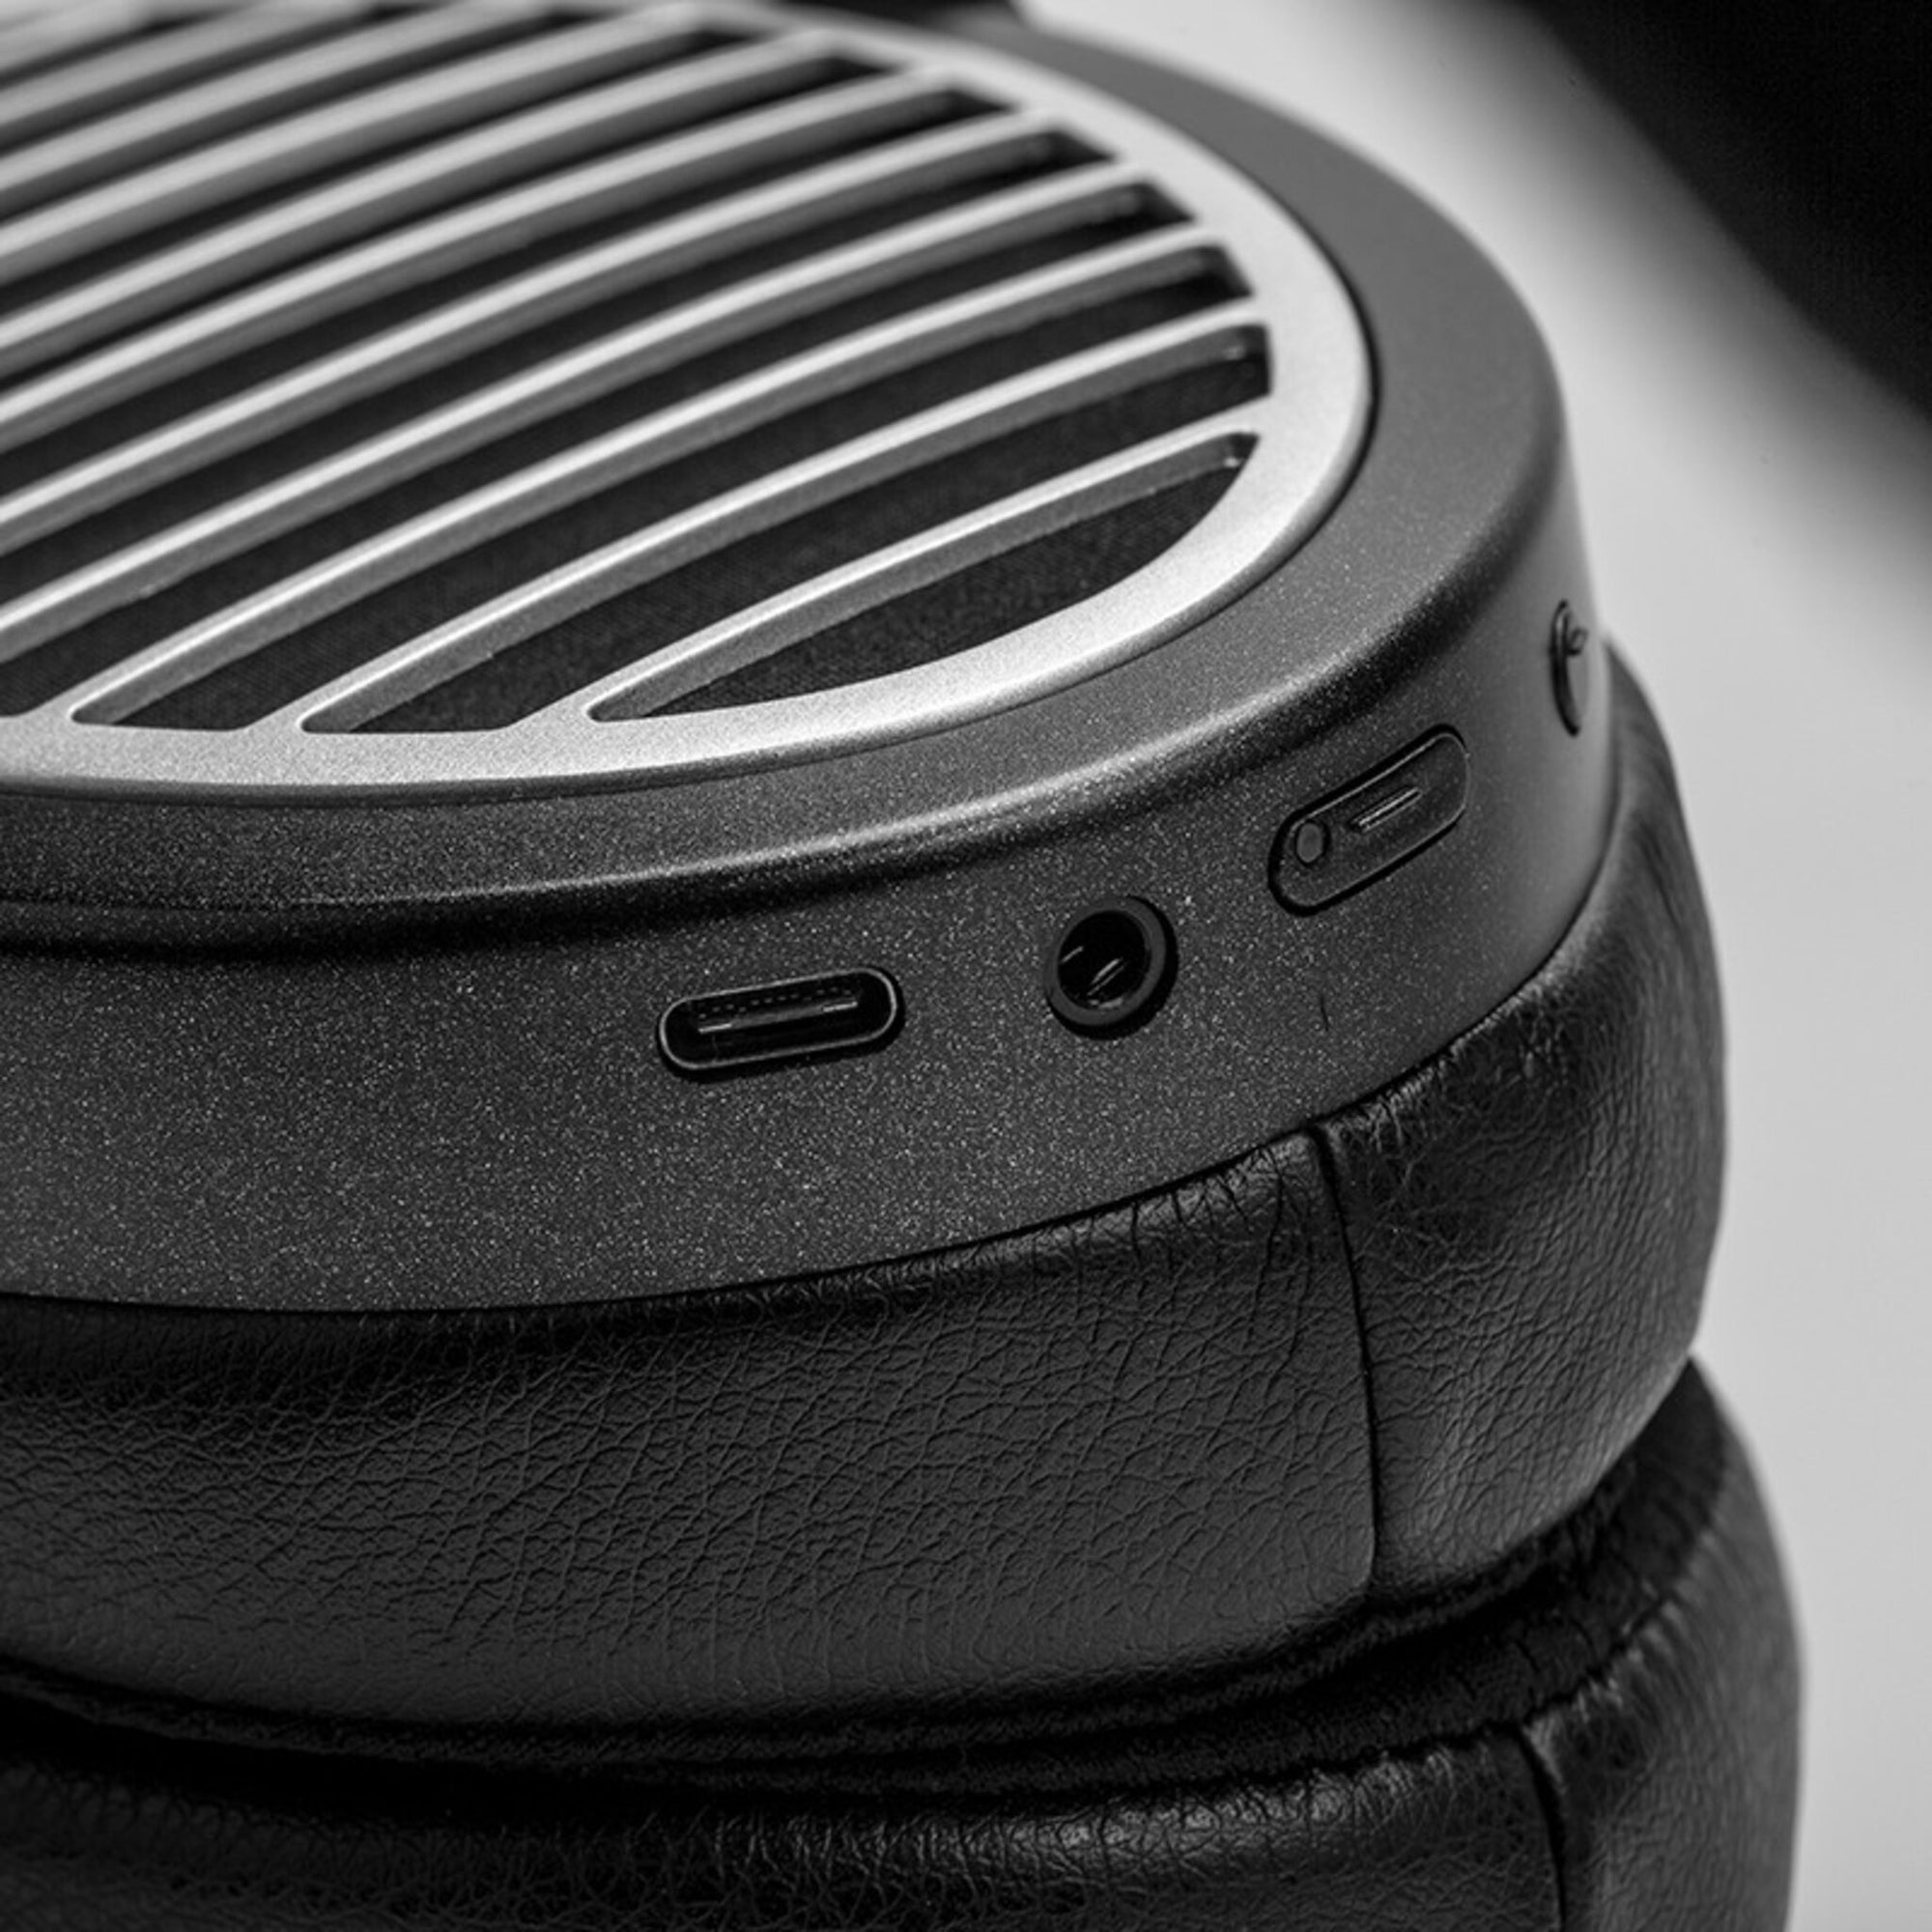 HIFIMAN Ananda-BT - Gears For Ears